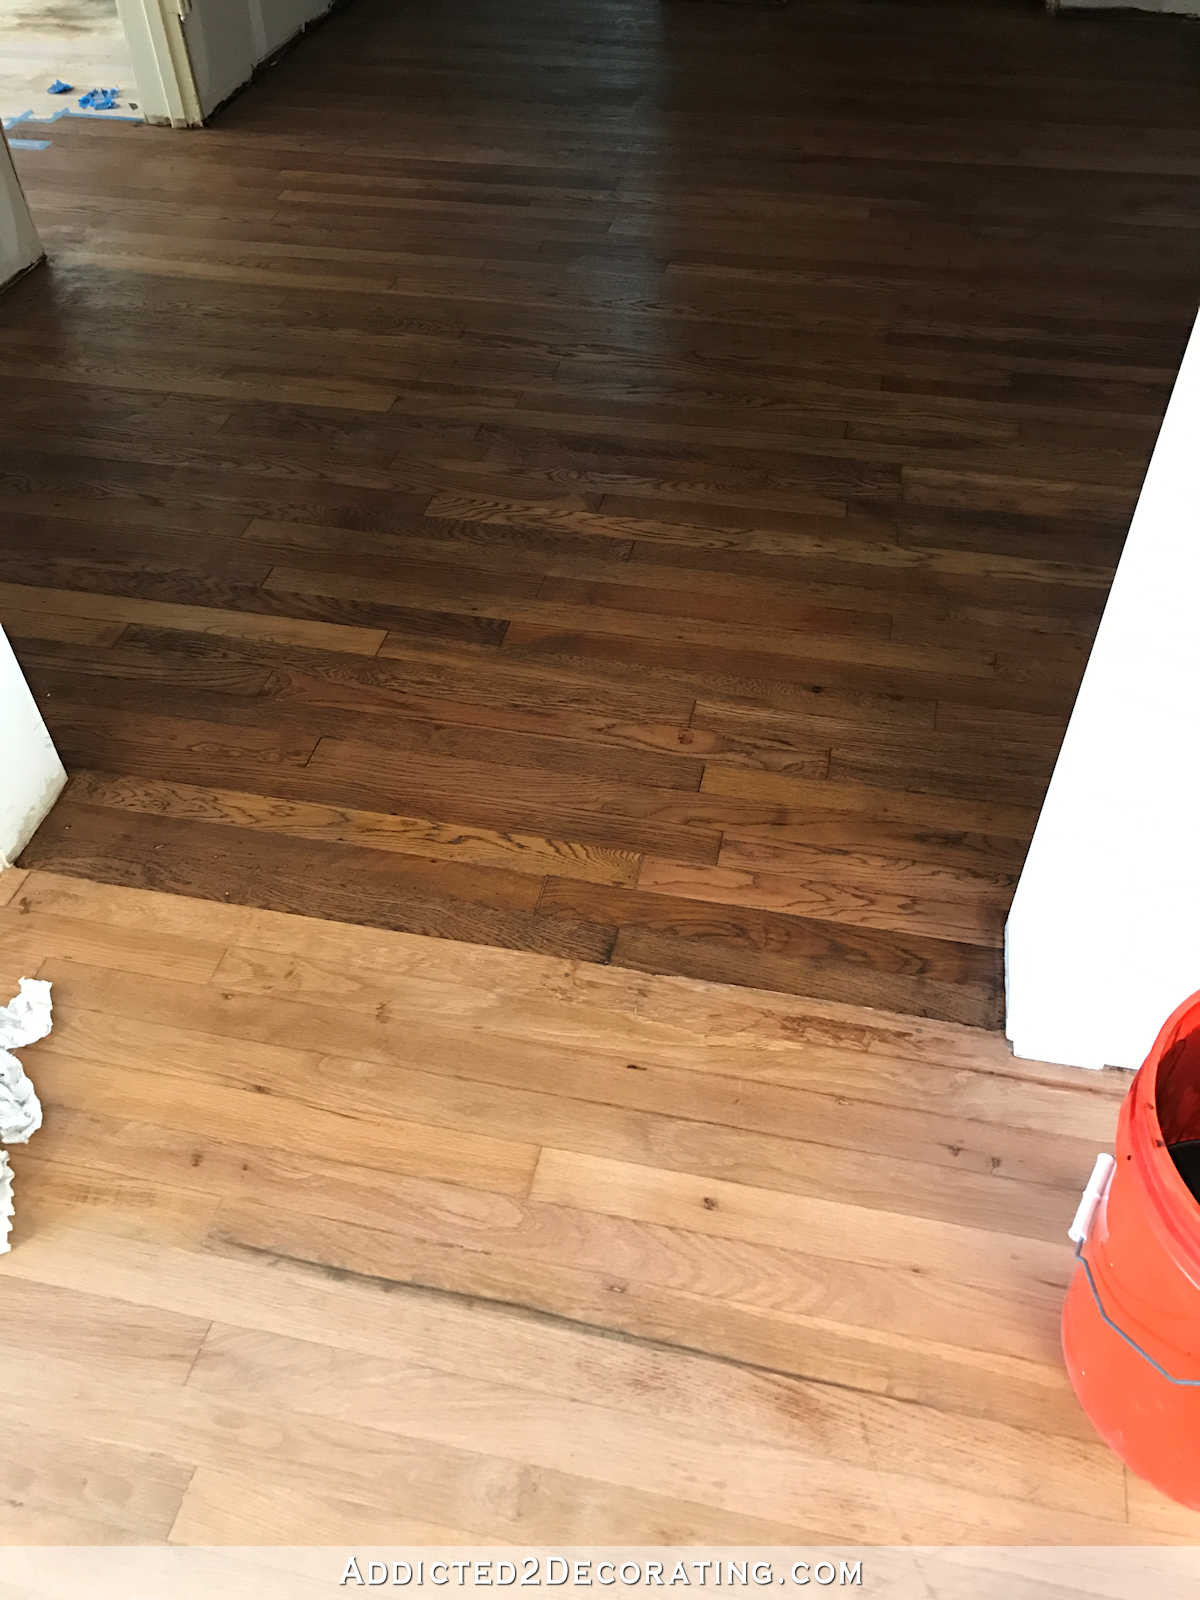 Dark Vs Light Colored Hardwood Floors Of Adventures In Staining My Red Oak Hardwood Floors Products Process with Staining Red Oak Hardwood Floors 2 Tape Off One Section at A Time for